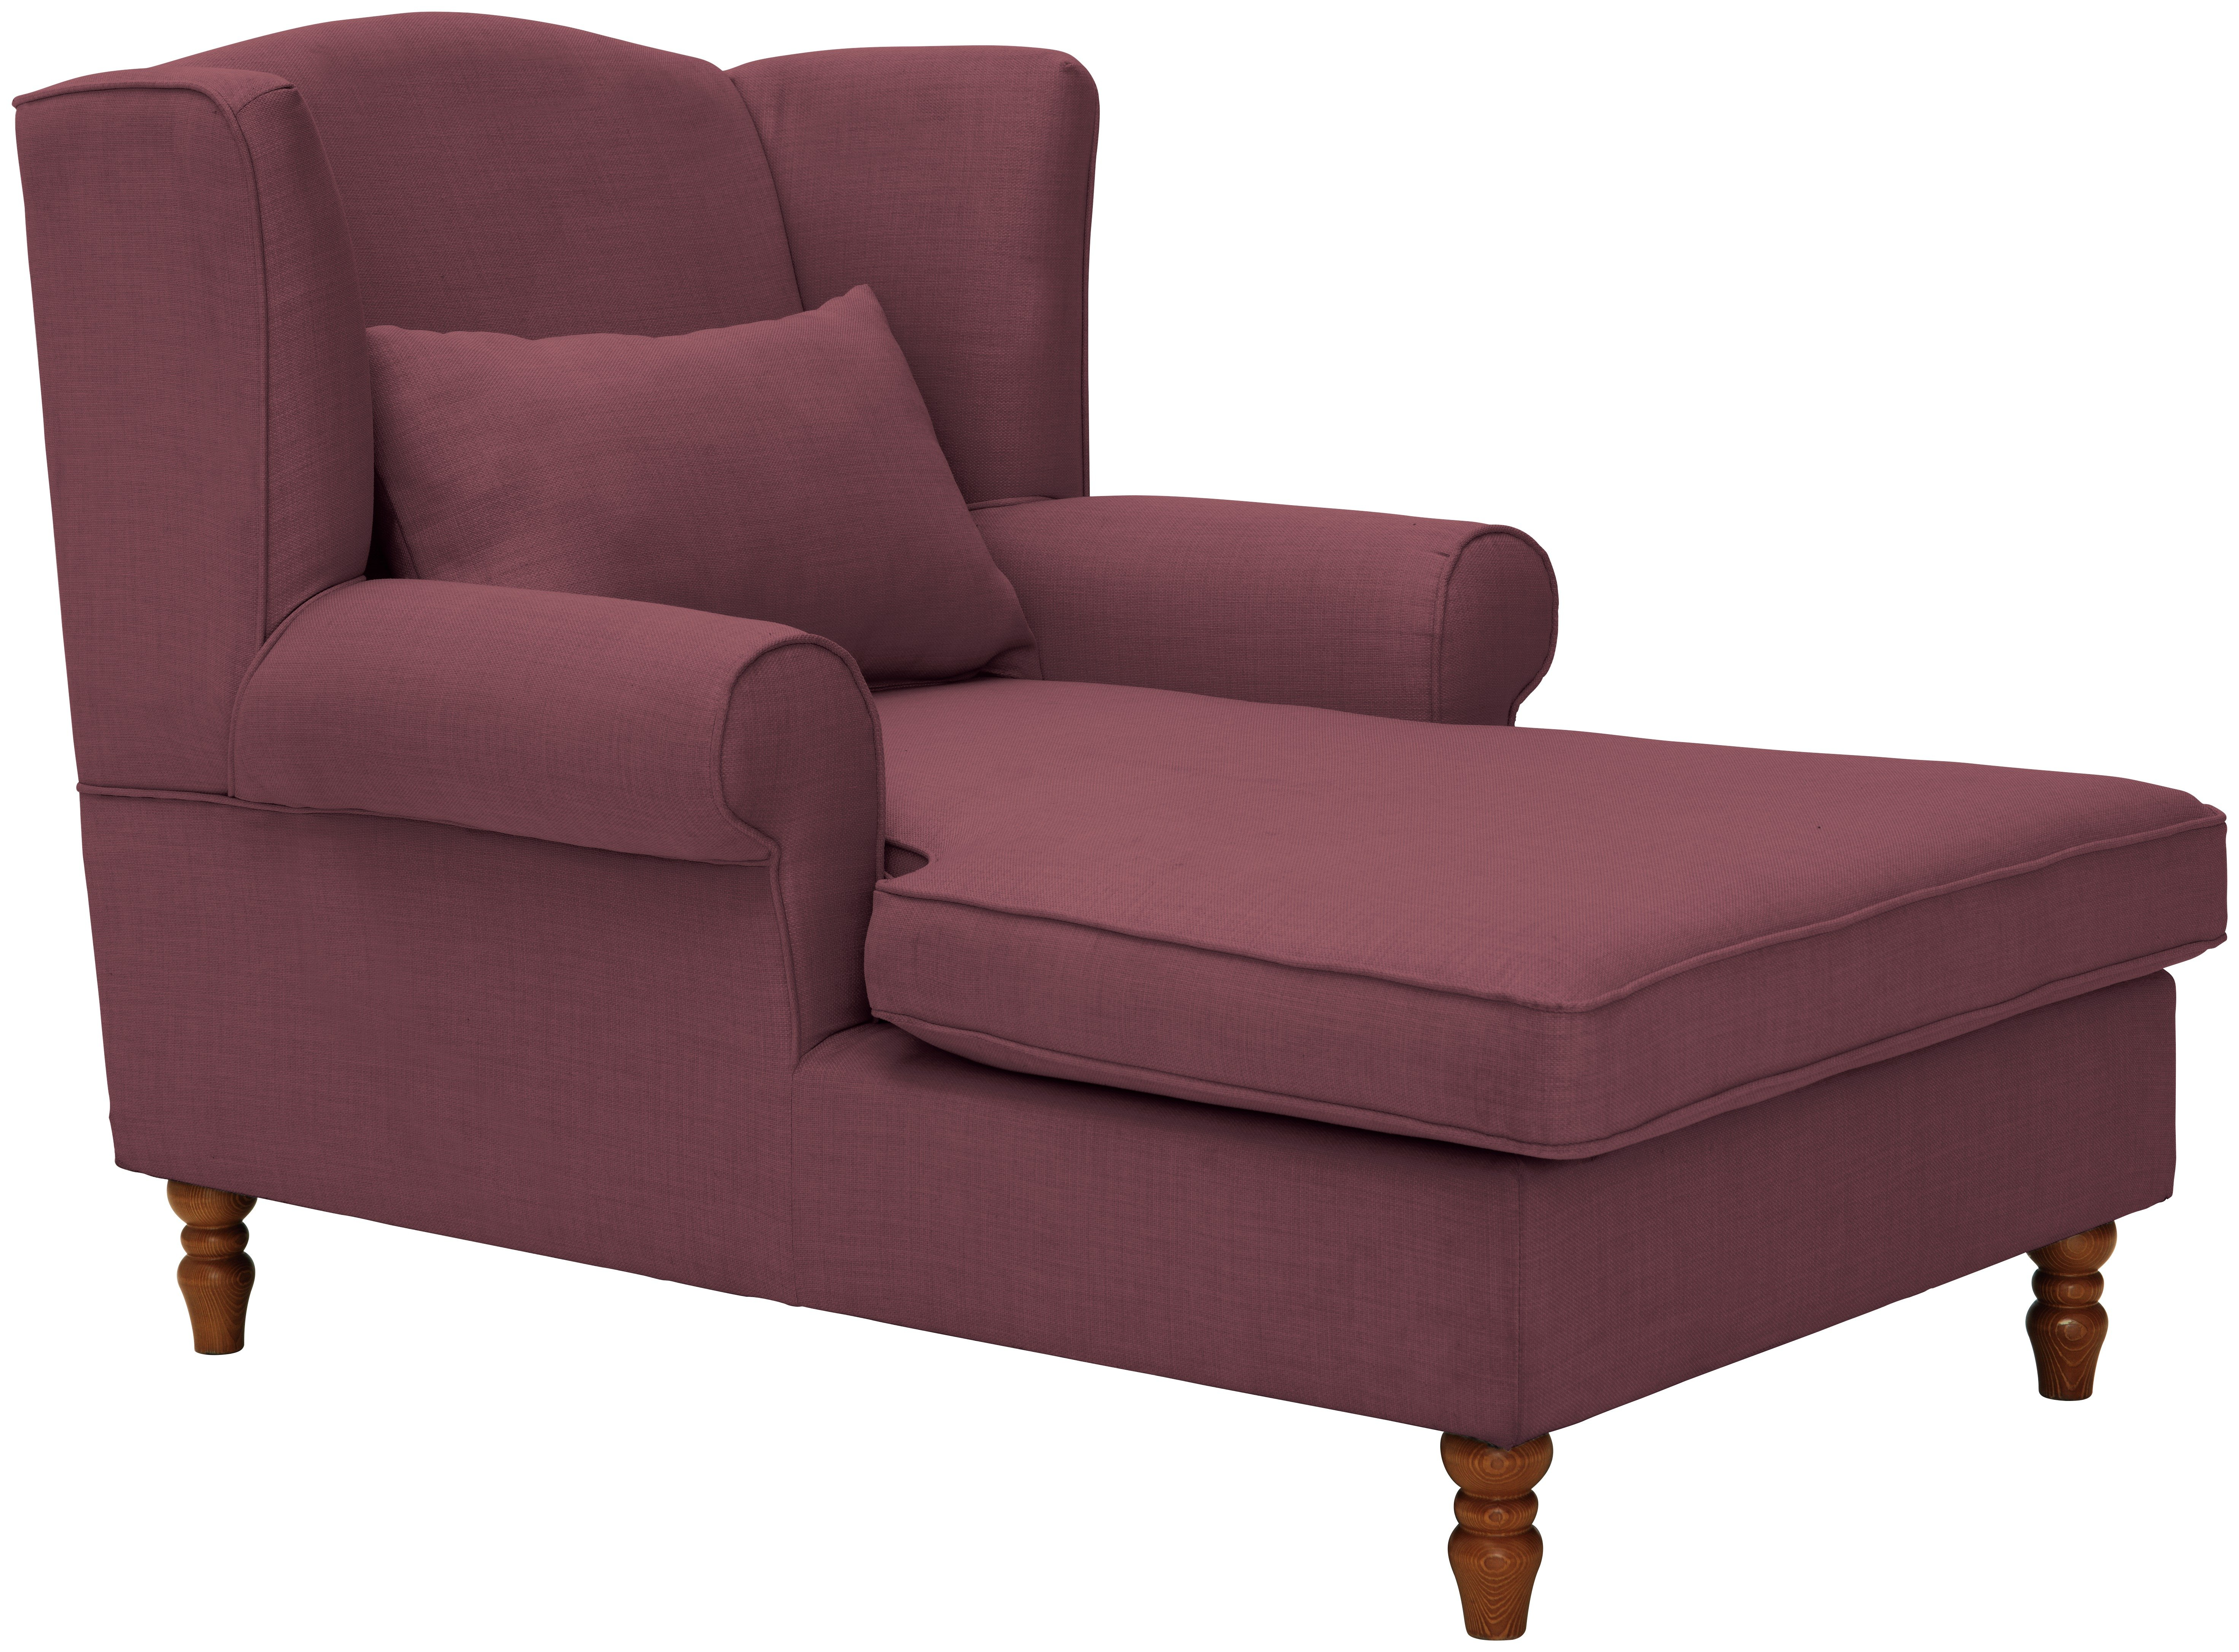 Heart of House Padstow Fabric Chaise Longue - Mulberry  sc 1 st  Argos : argos chaise lounge - Sectionals, Sofas & Couches